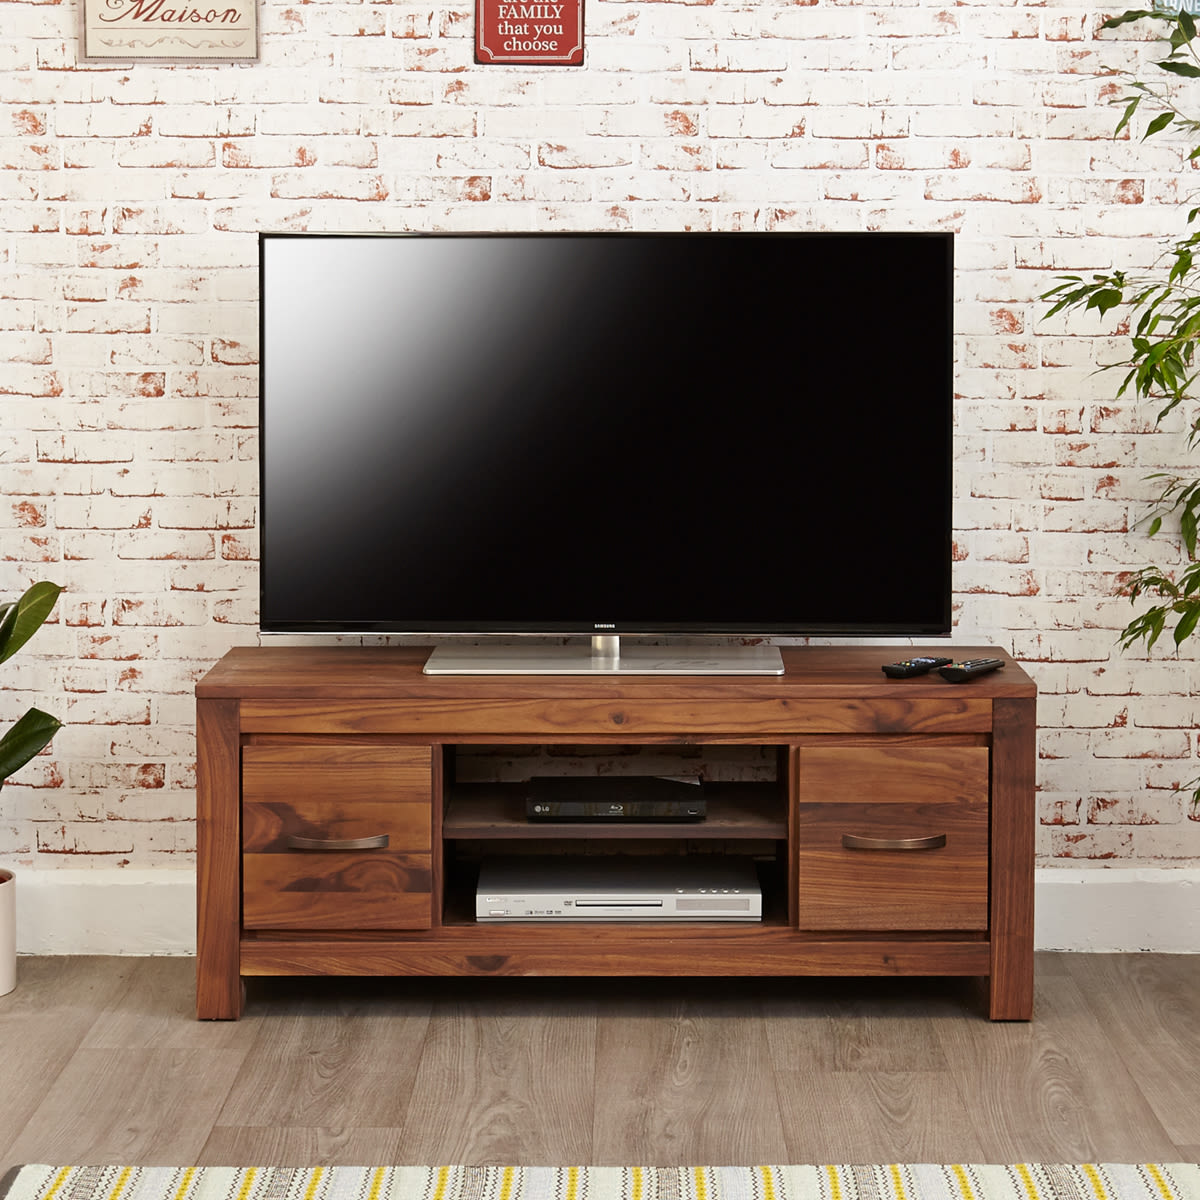 Mayan Walnut Low Television Cabinet Was 163 470 00 Now 163 399